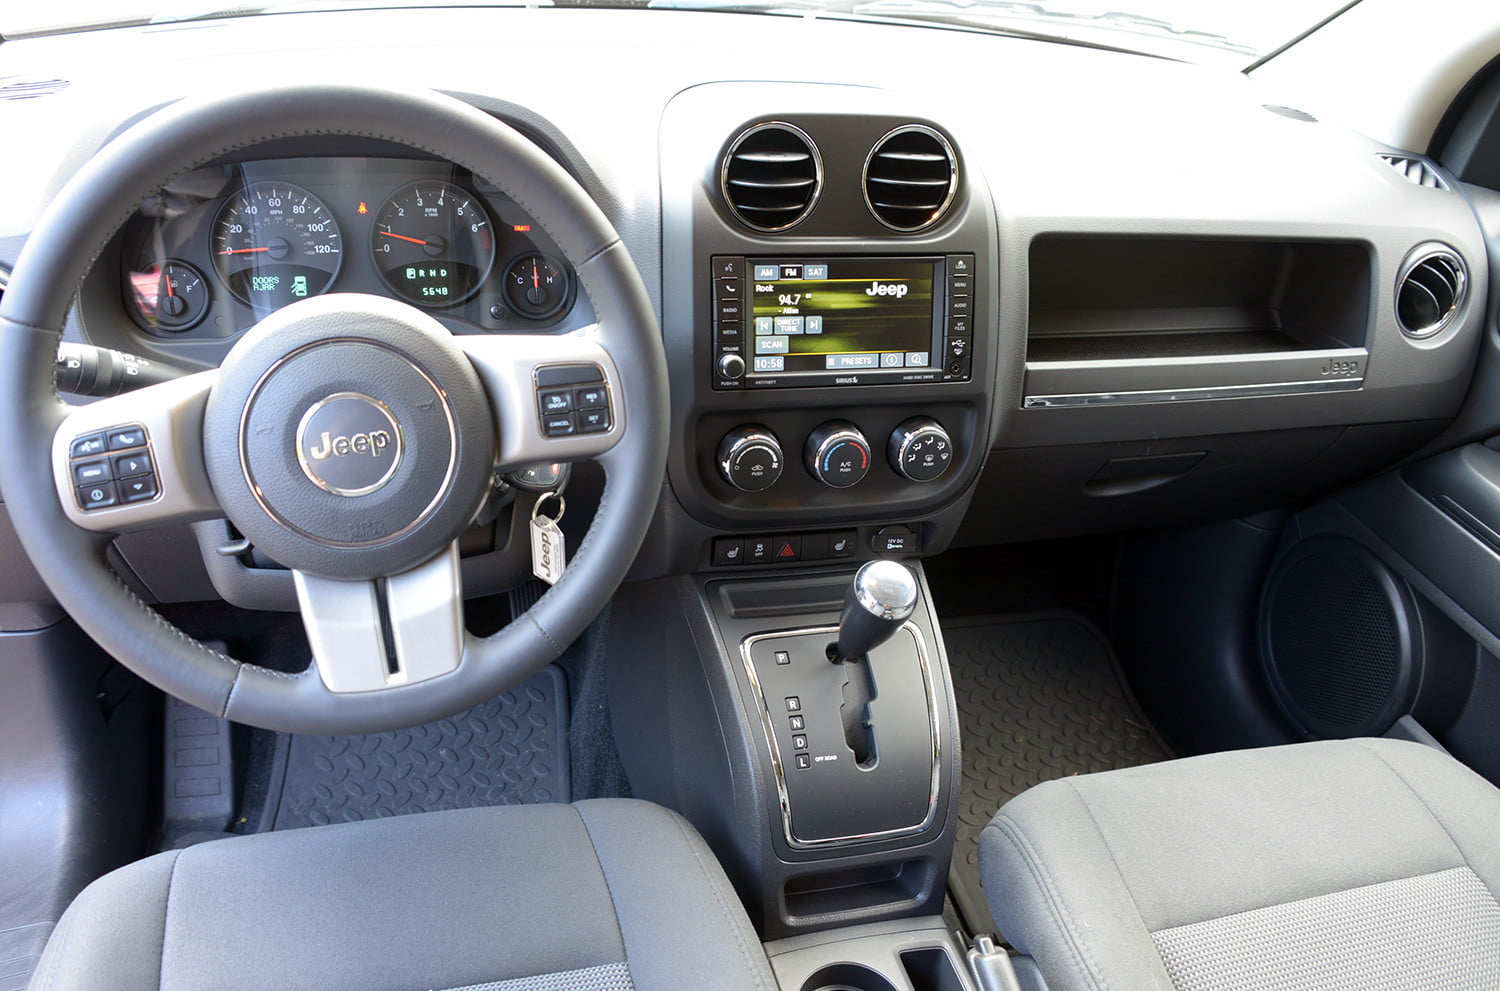 2013 jeep compass review digital trends jeep compass review interior front